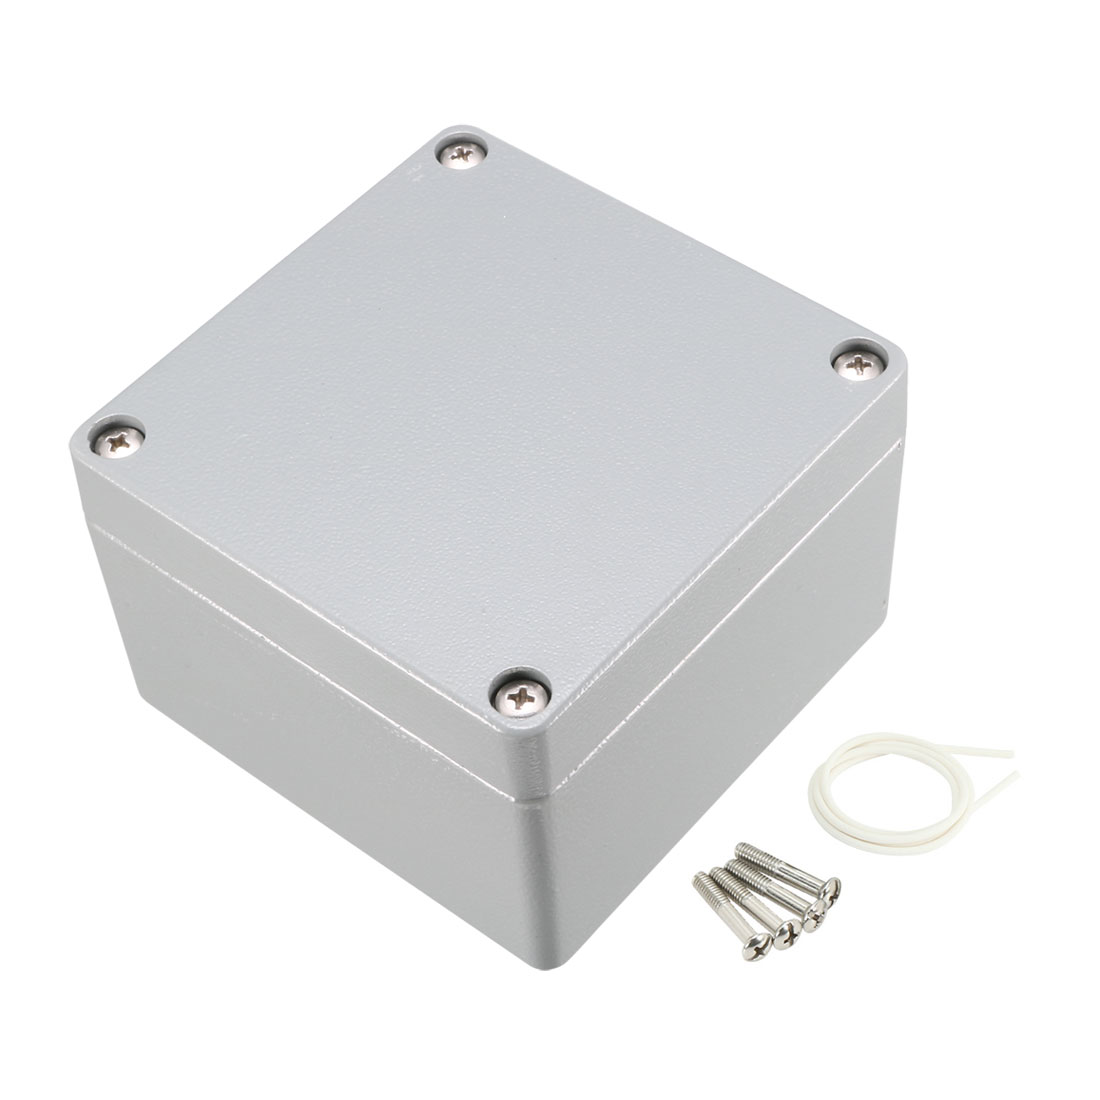 "4.7""x4.7""x3.2""(120mmx120mmx82mm) Aluminum Junction Box Universal Electric Project Enclosure"